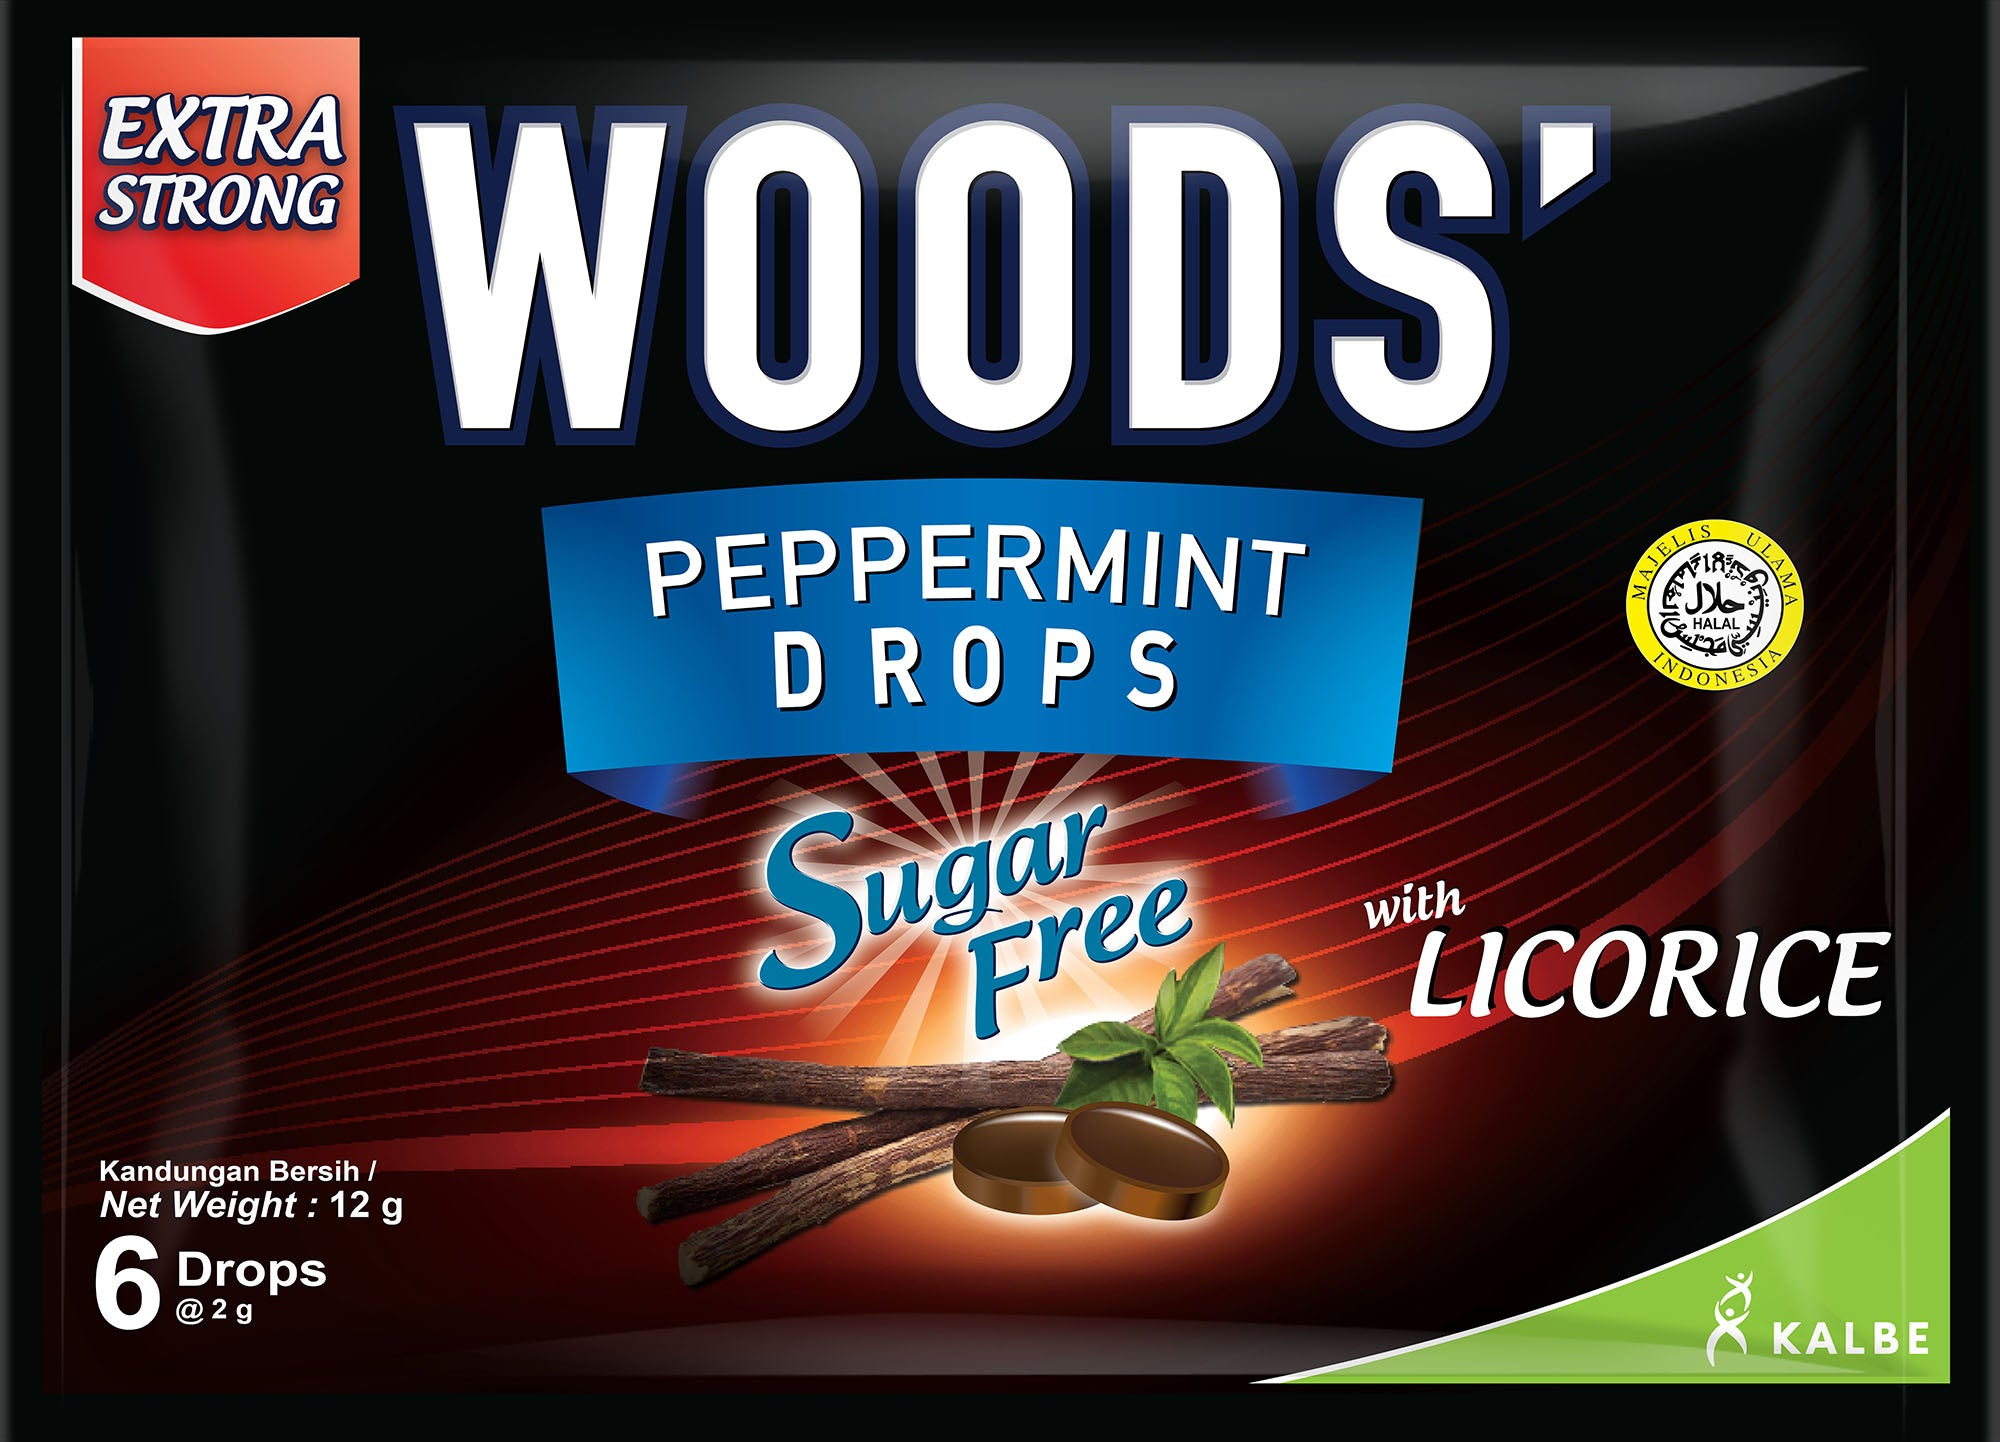 WOOD'S PEPPERMINT DROPS SUGAR FREE LICORICE 12G